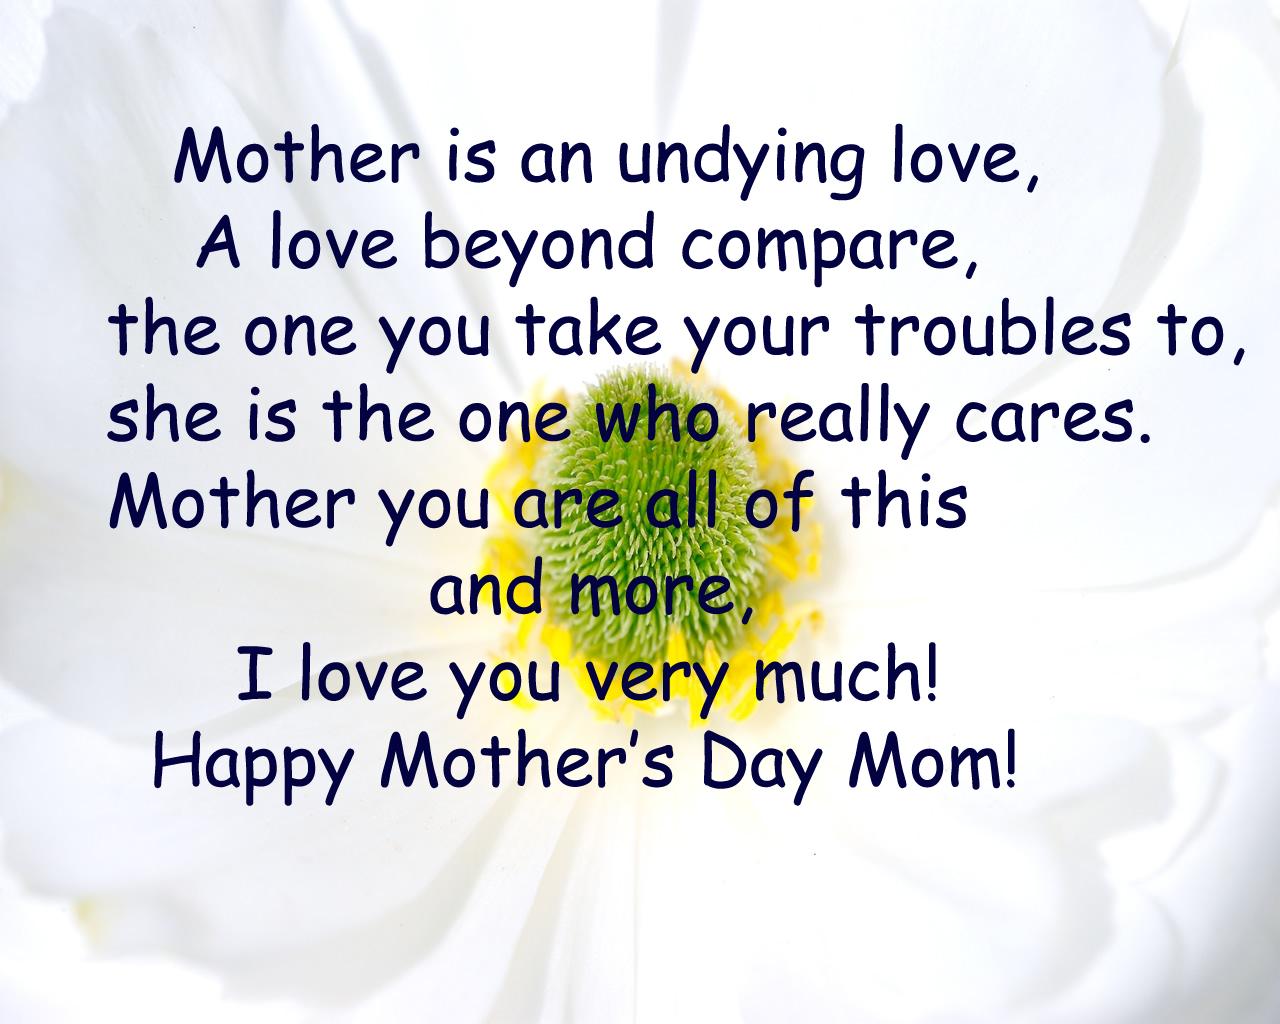 Mother day quotes in spanish bible quotesgram for Mothers day quotes and sayings